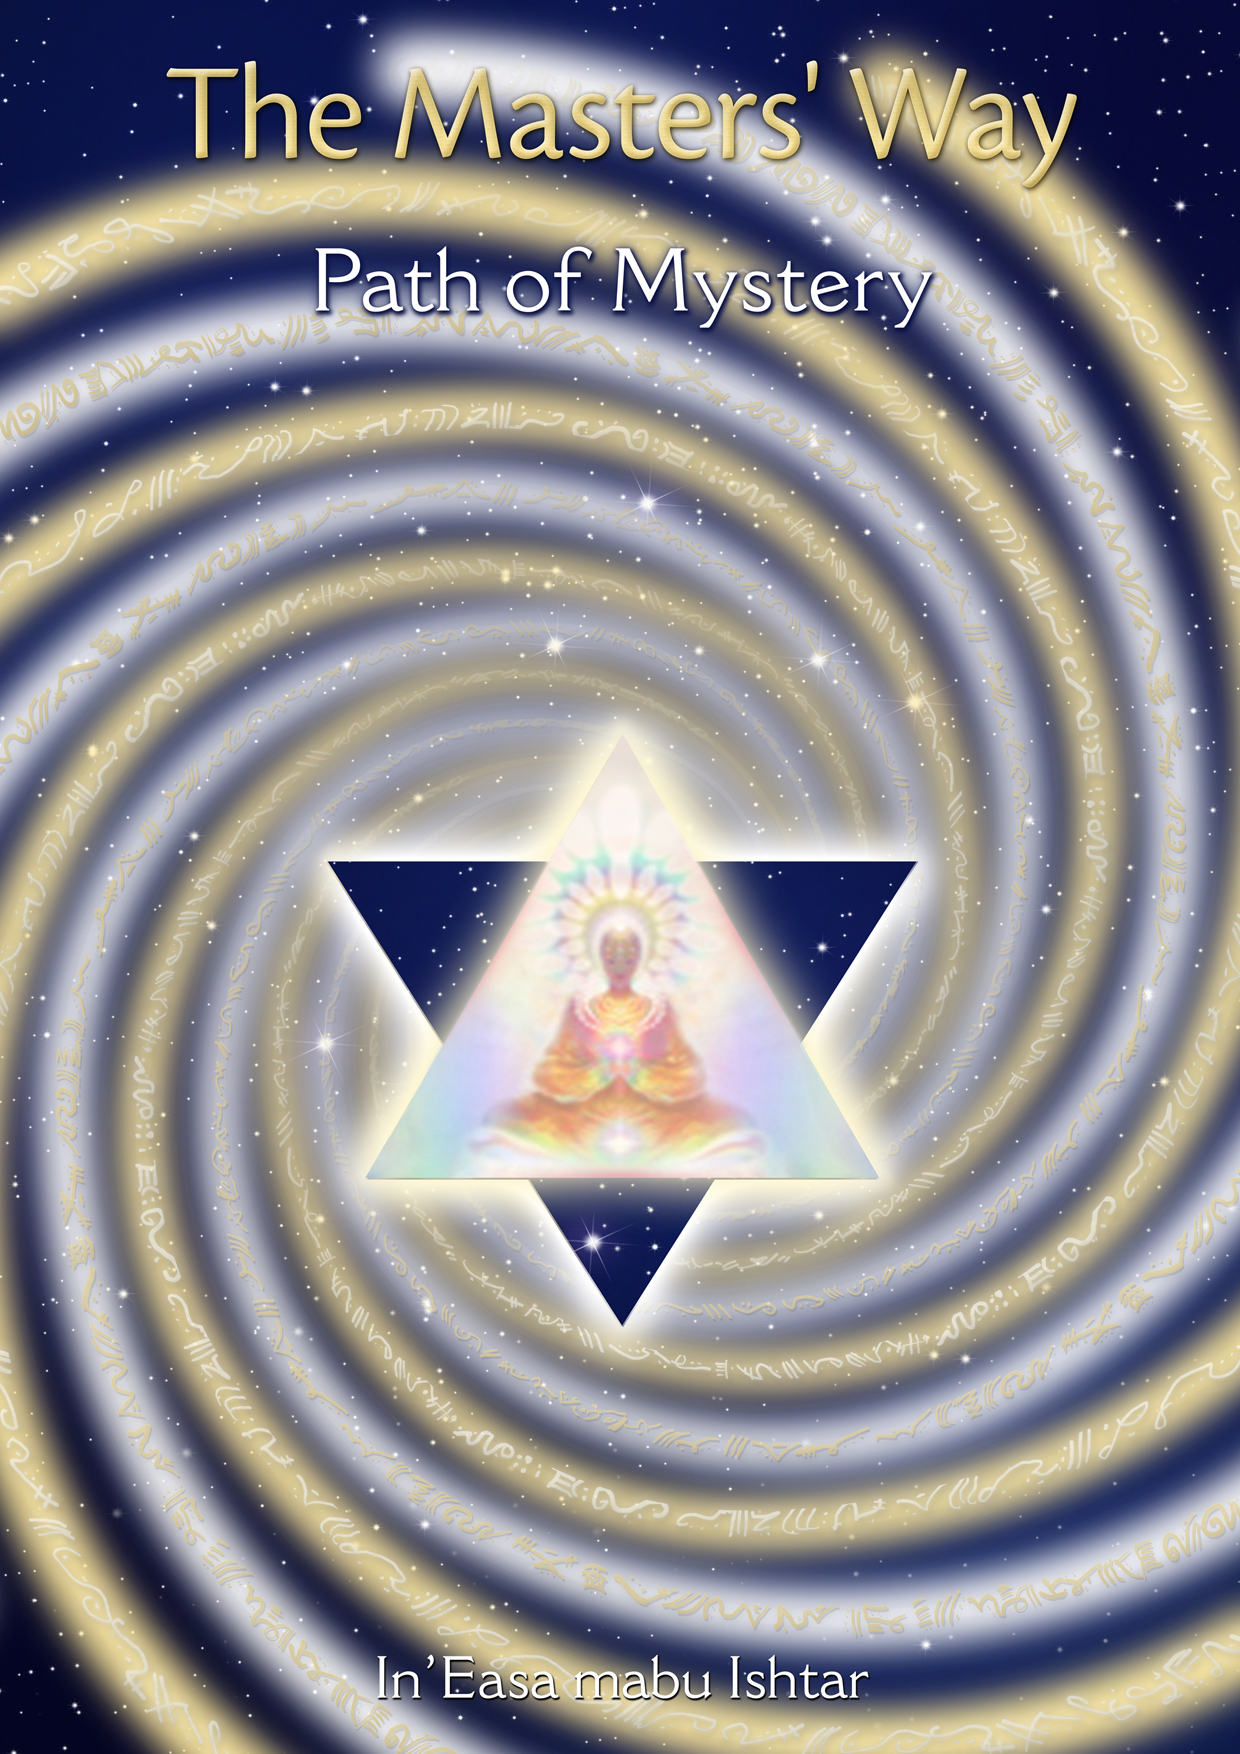 STUDENT PACKAGE INCLUDES - 365-page manual33 live audio recordings of each lessonA welcome letterFocus for the courseChannelled message from your guiding Masters for this level33 Lessons on the Path of Mystery from the Ascended MastersKey Teachings and Student Worksheet to finish.Your cells, DNA, aspects, monads and energy bodies will be highly activated as you work with this manual.A suggested regime for working with this course is offered in the manual.9 chapters about the Path of Mystery with practical information and guidance to follow.Tools of Assistance section with 14 chapters - Power of the Mind, Monads and Souls, The Light Body, Seven Lower Bodies, Five Higher Bodies, The Chakras, 12 Universal Rays, Karma, Universal Laws, Basic Energy Work, Resolving Aspects, Light Technology, Ascended Master Tools, Decrees, and Affirmations, Power of Mantras.31 channelled answers from the Ascended MastersPLUS access to a Facebook student group for The Masters' WayAll students who complete the three levels may apply to teach this work to their own groups